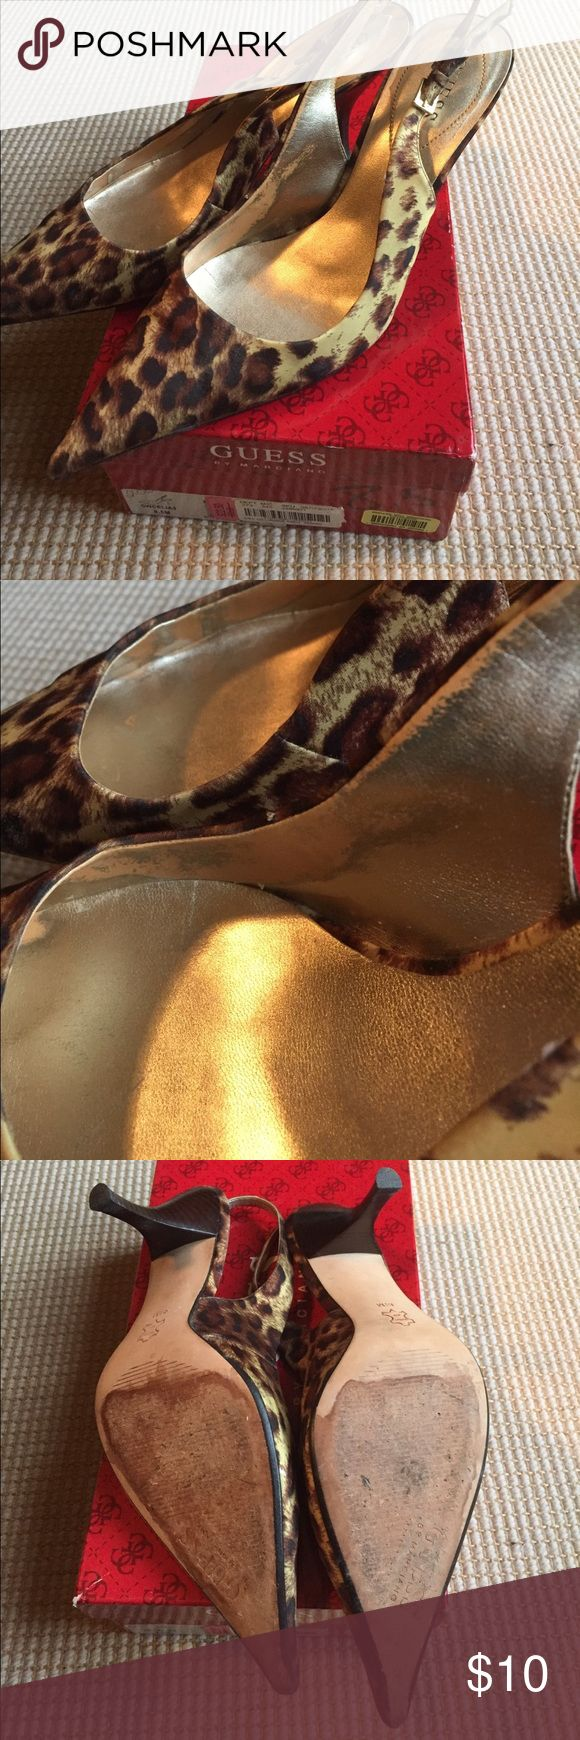 Guess Cheetah Heels, 8.5M Good used condition, wear shown in photos Guess by Marciano Shoes Heels